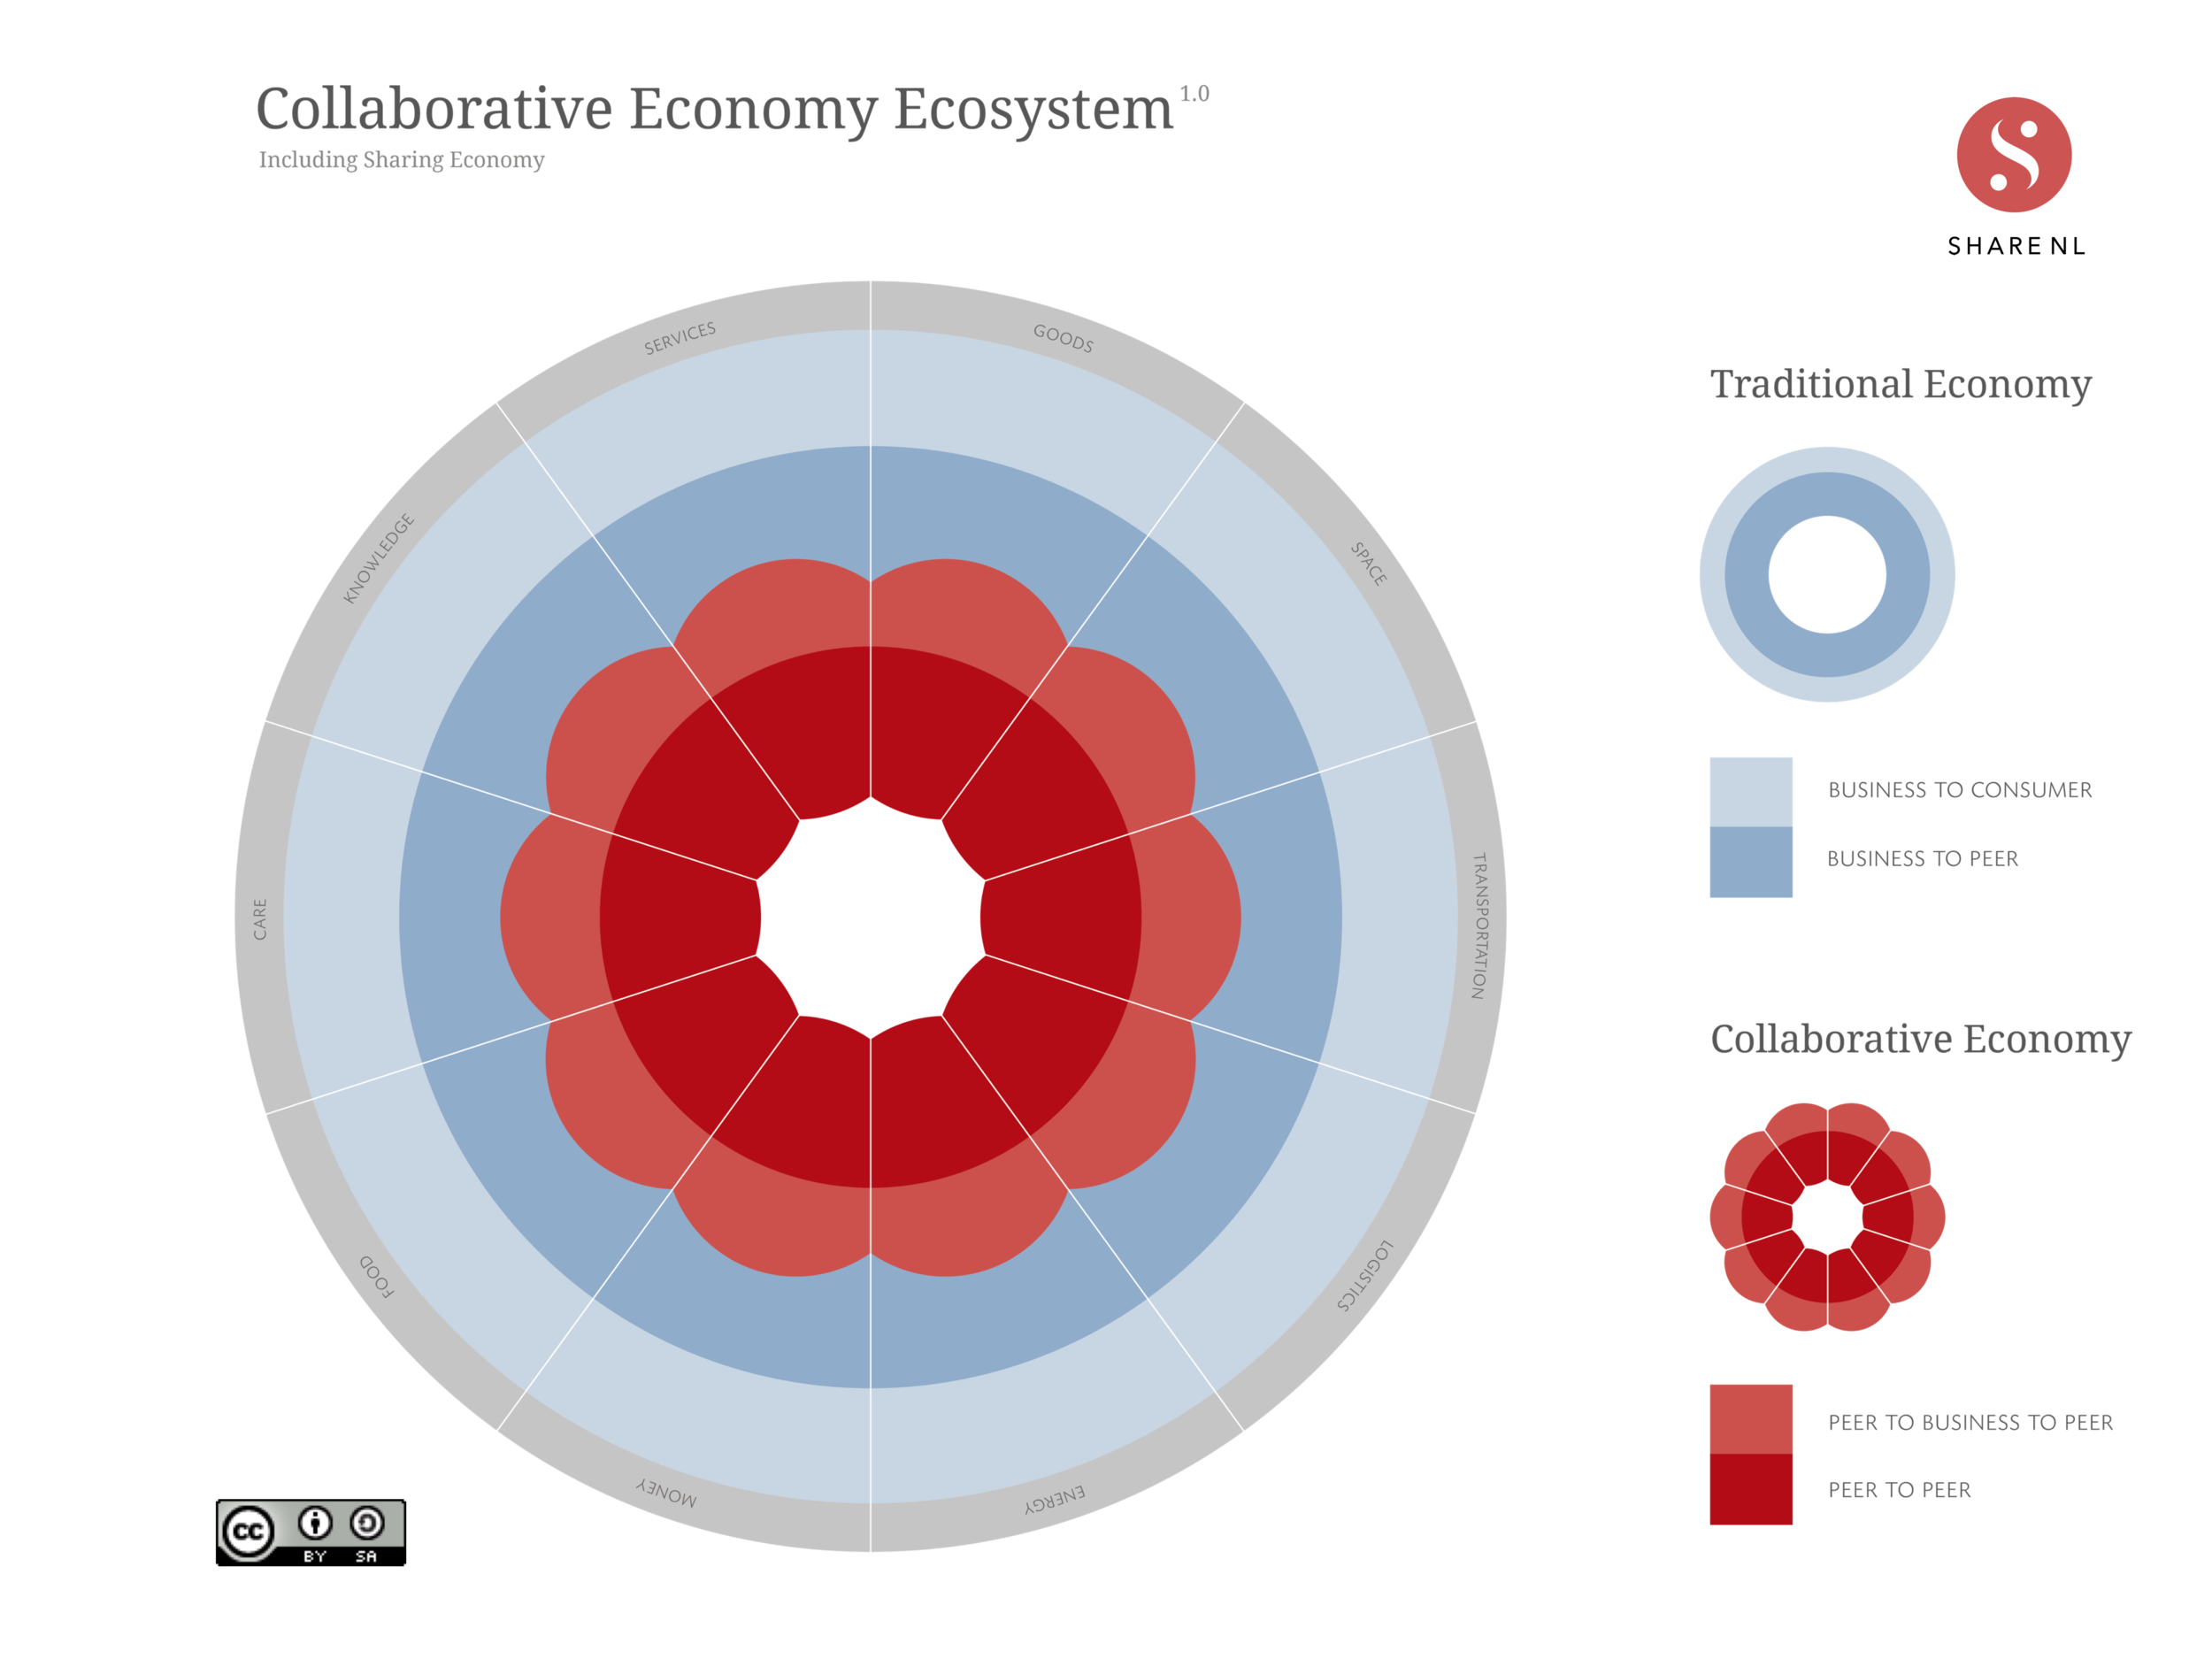 Collaborative economy ecosystem by shareNL can be reused,tweaked and shared under the  CC BY-SA 4.0 license .